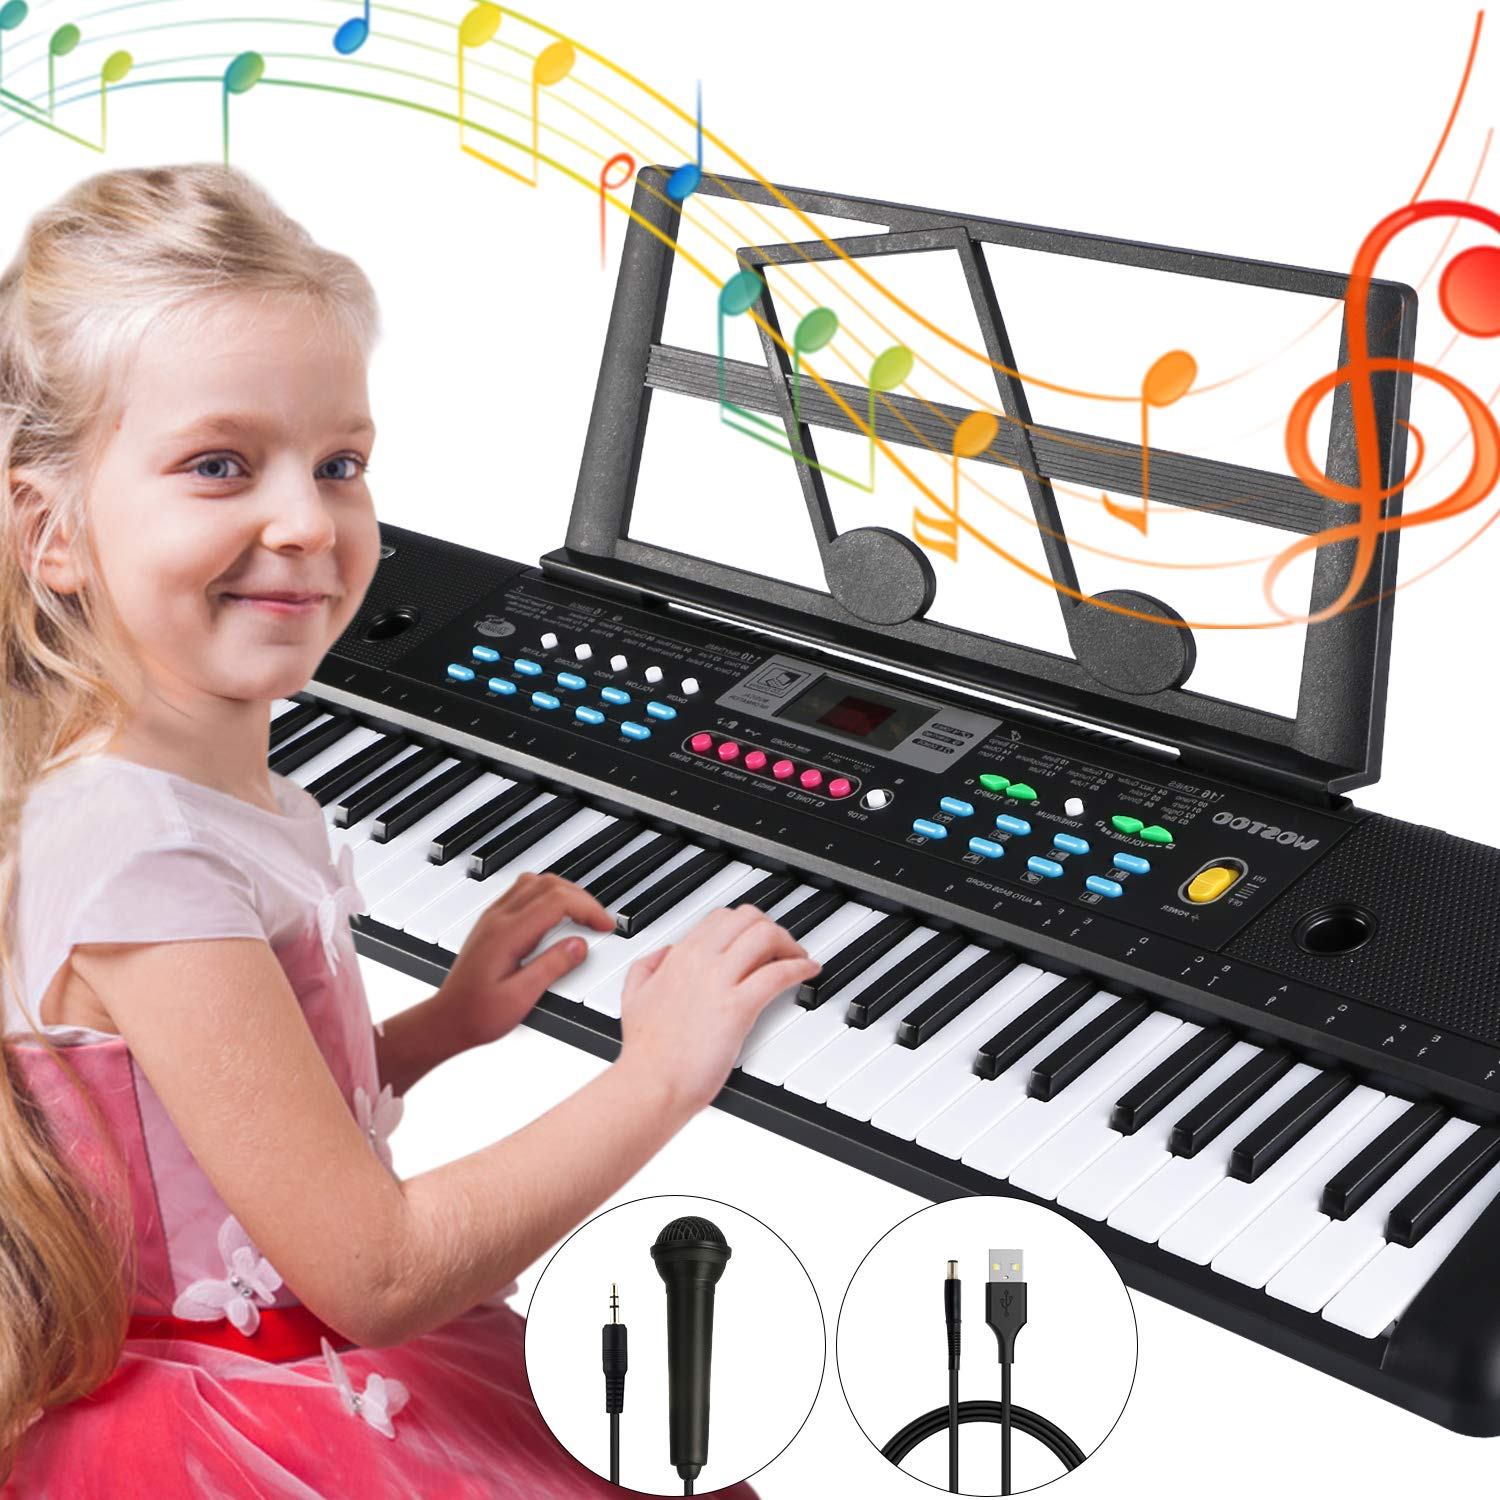 Electronic Keyboard Piano 61 Key,Tencoz Portable Piano Keyboard with Music Stand, Microphone, Power Supply Digital Music Piano Keyboard for Kids